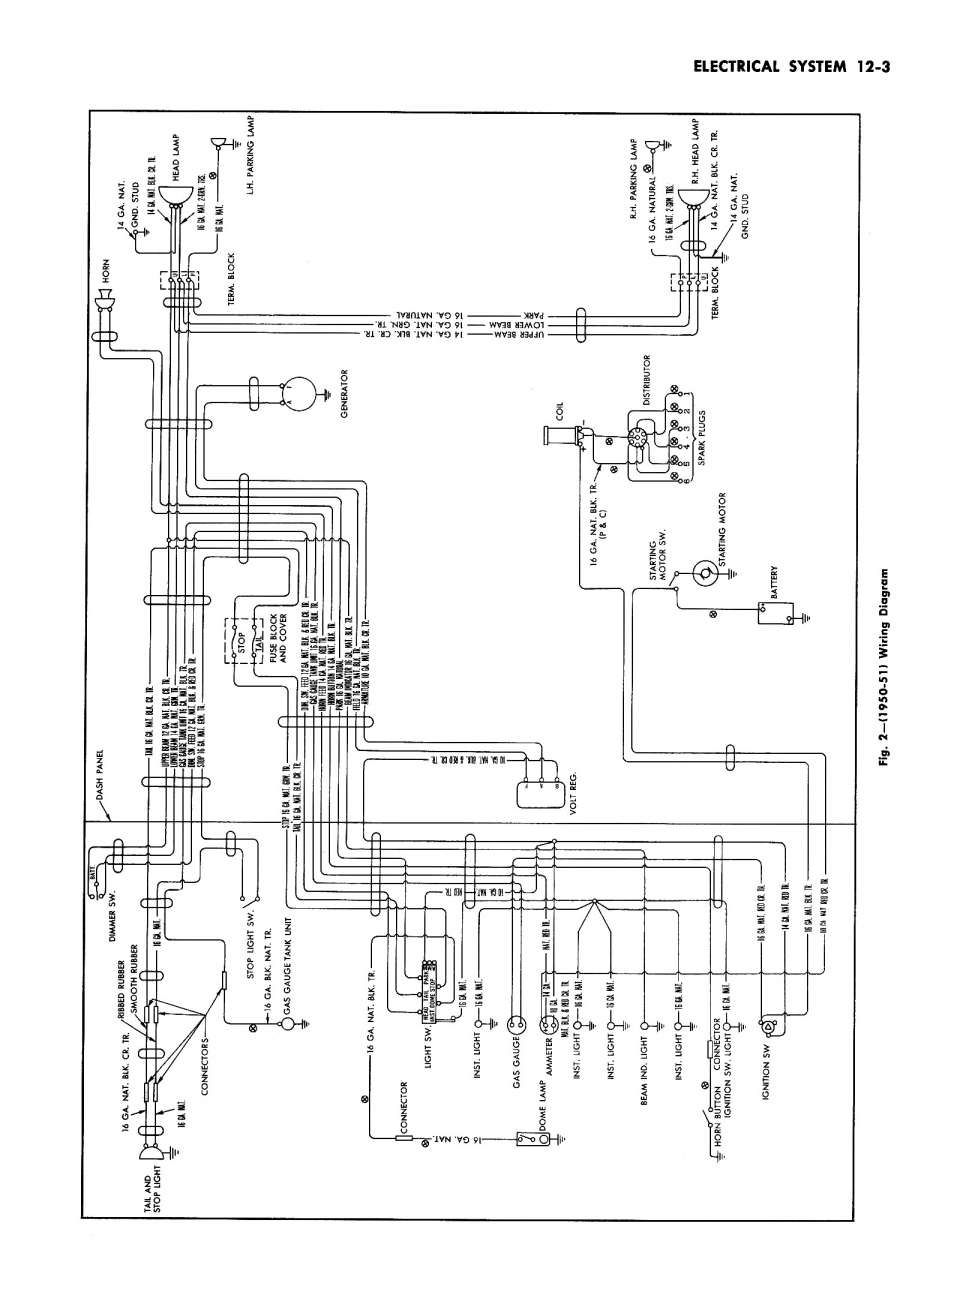 17+ gauges wiring diagram 1950 chevy car,car diagram - wiringg.net | chevy  trucks, 1966 chevy truck, 1959 chevy truck  pinterest